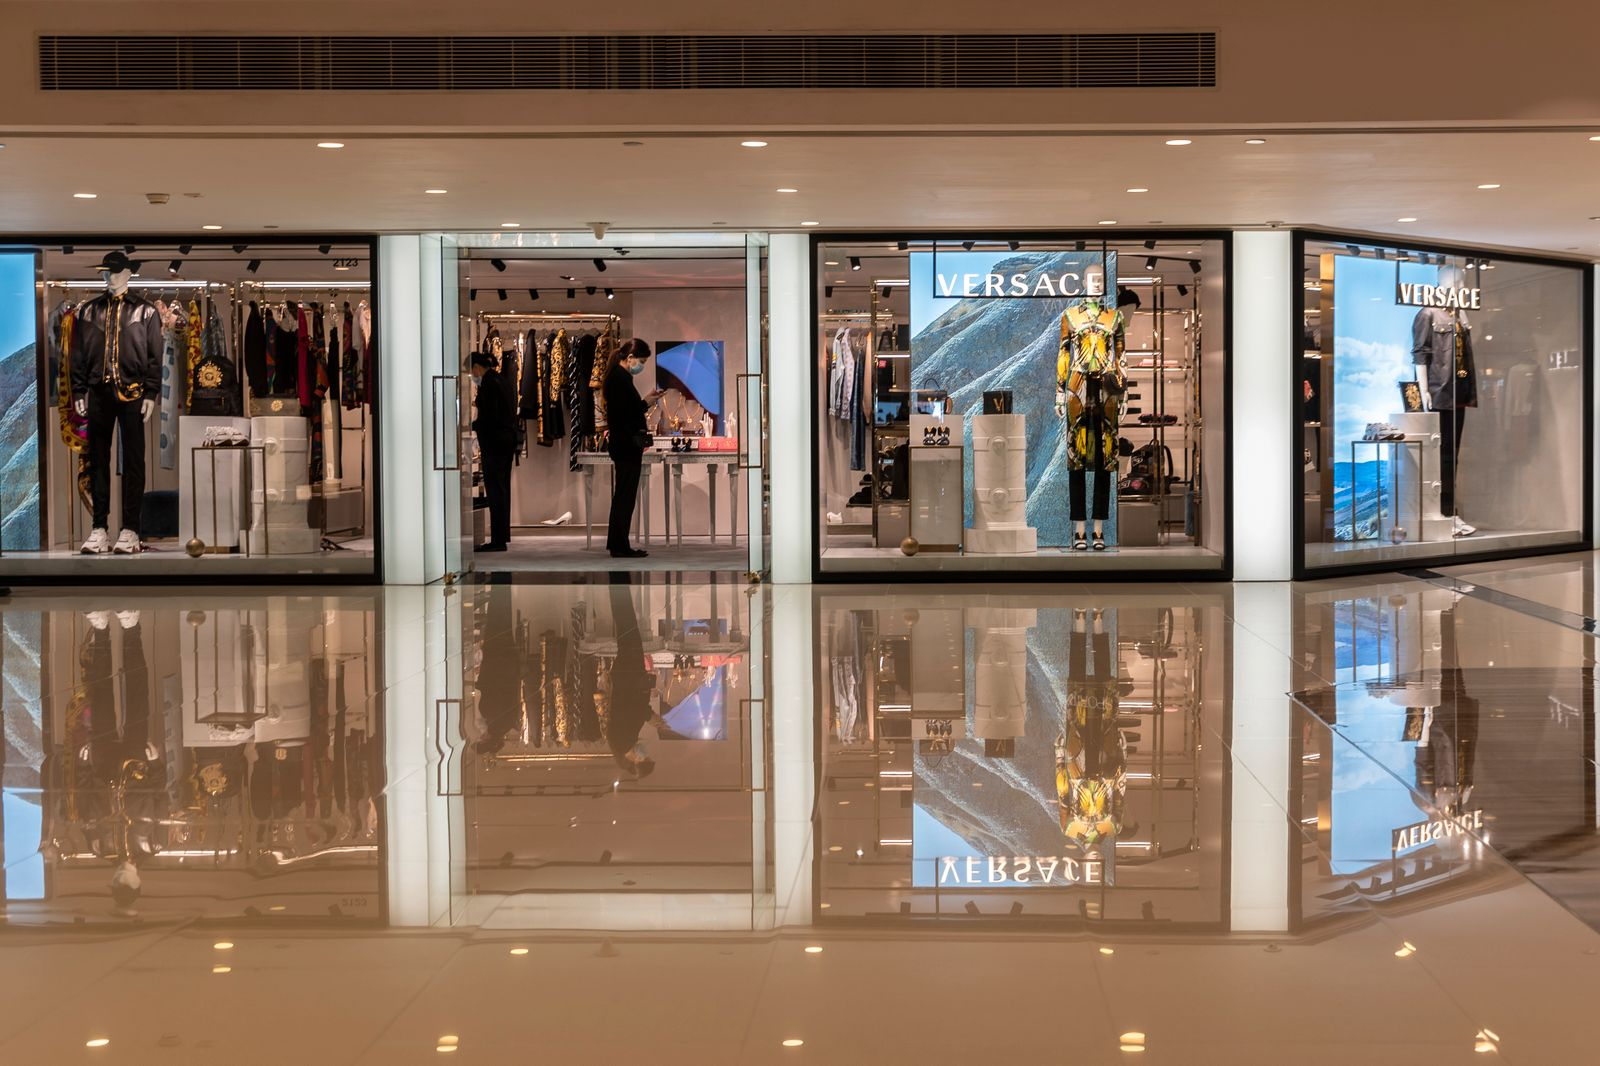 A masked shop keepers of the luxury brand Versace inside the